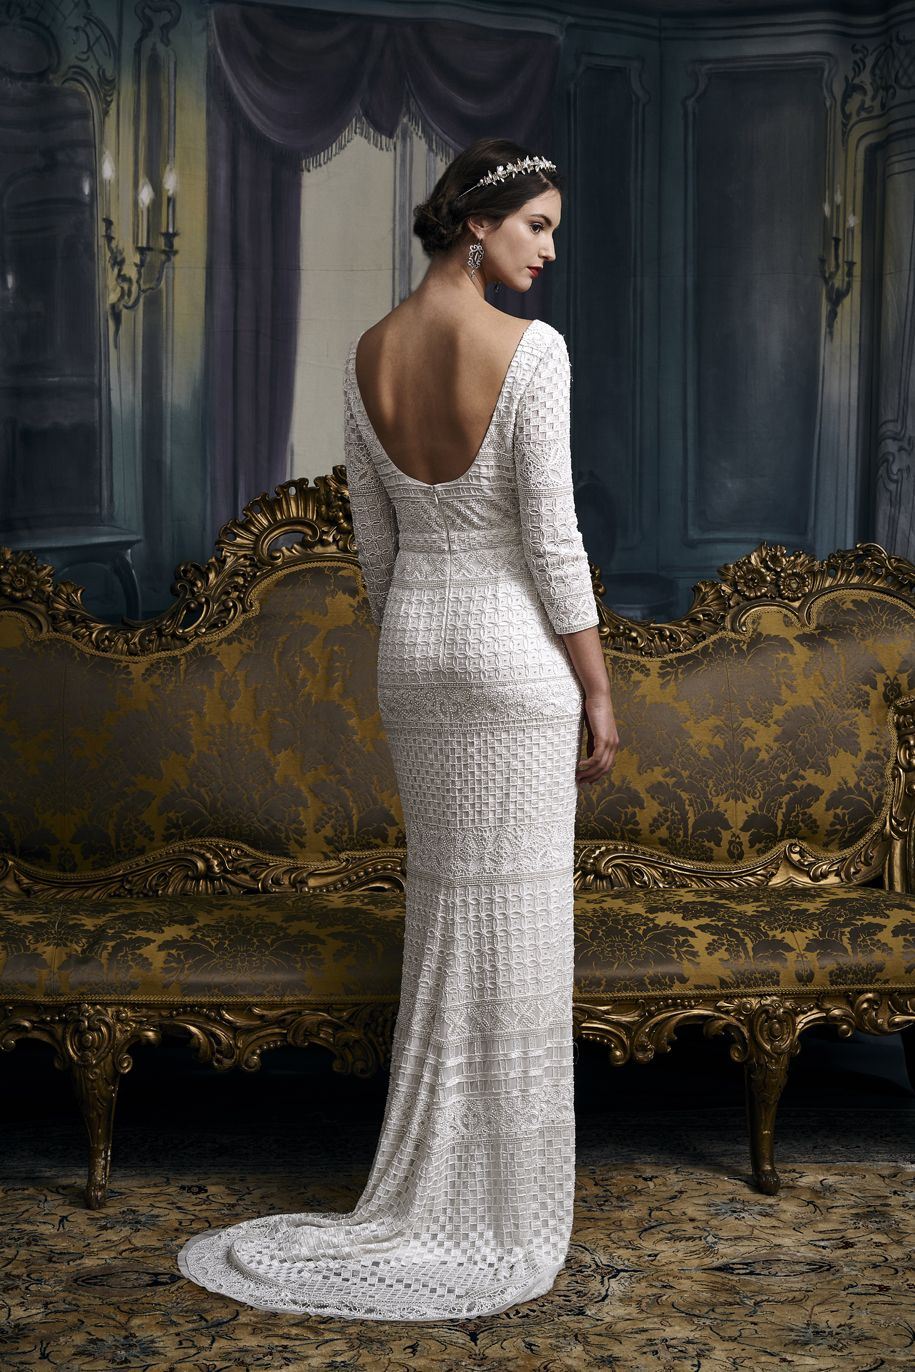 Vintage inspired old school hollywood glamour beaded wedding dress ...